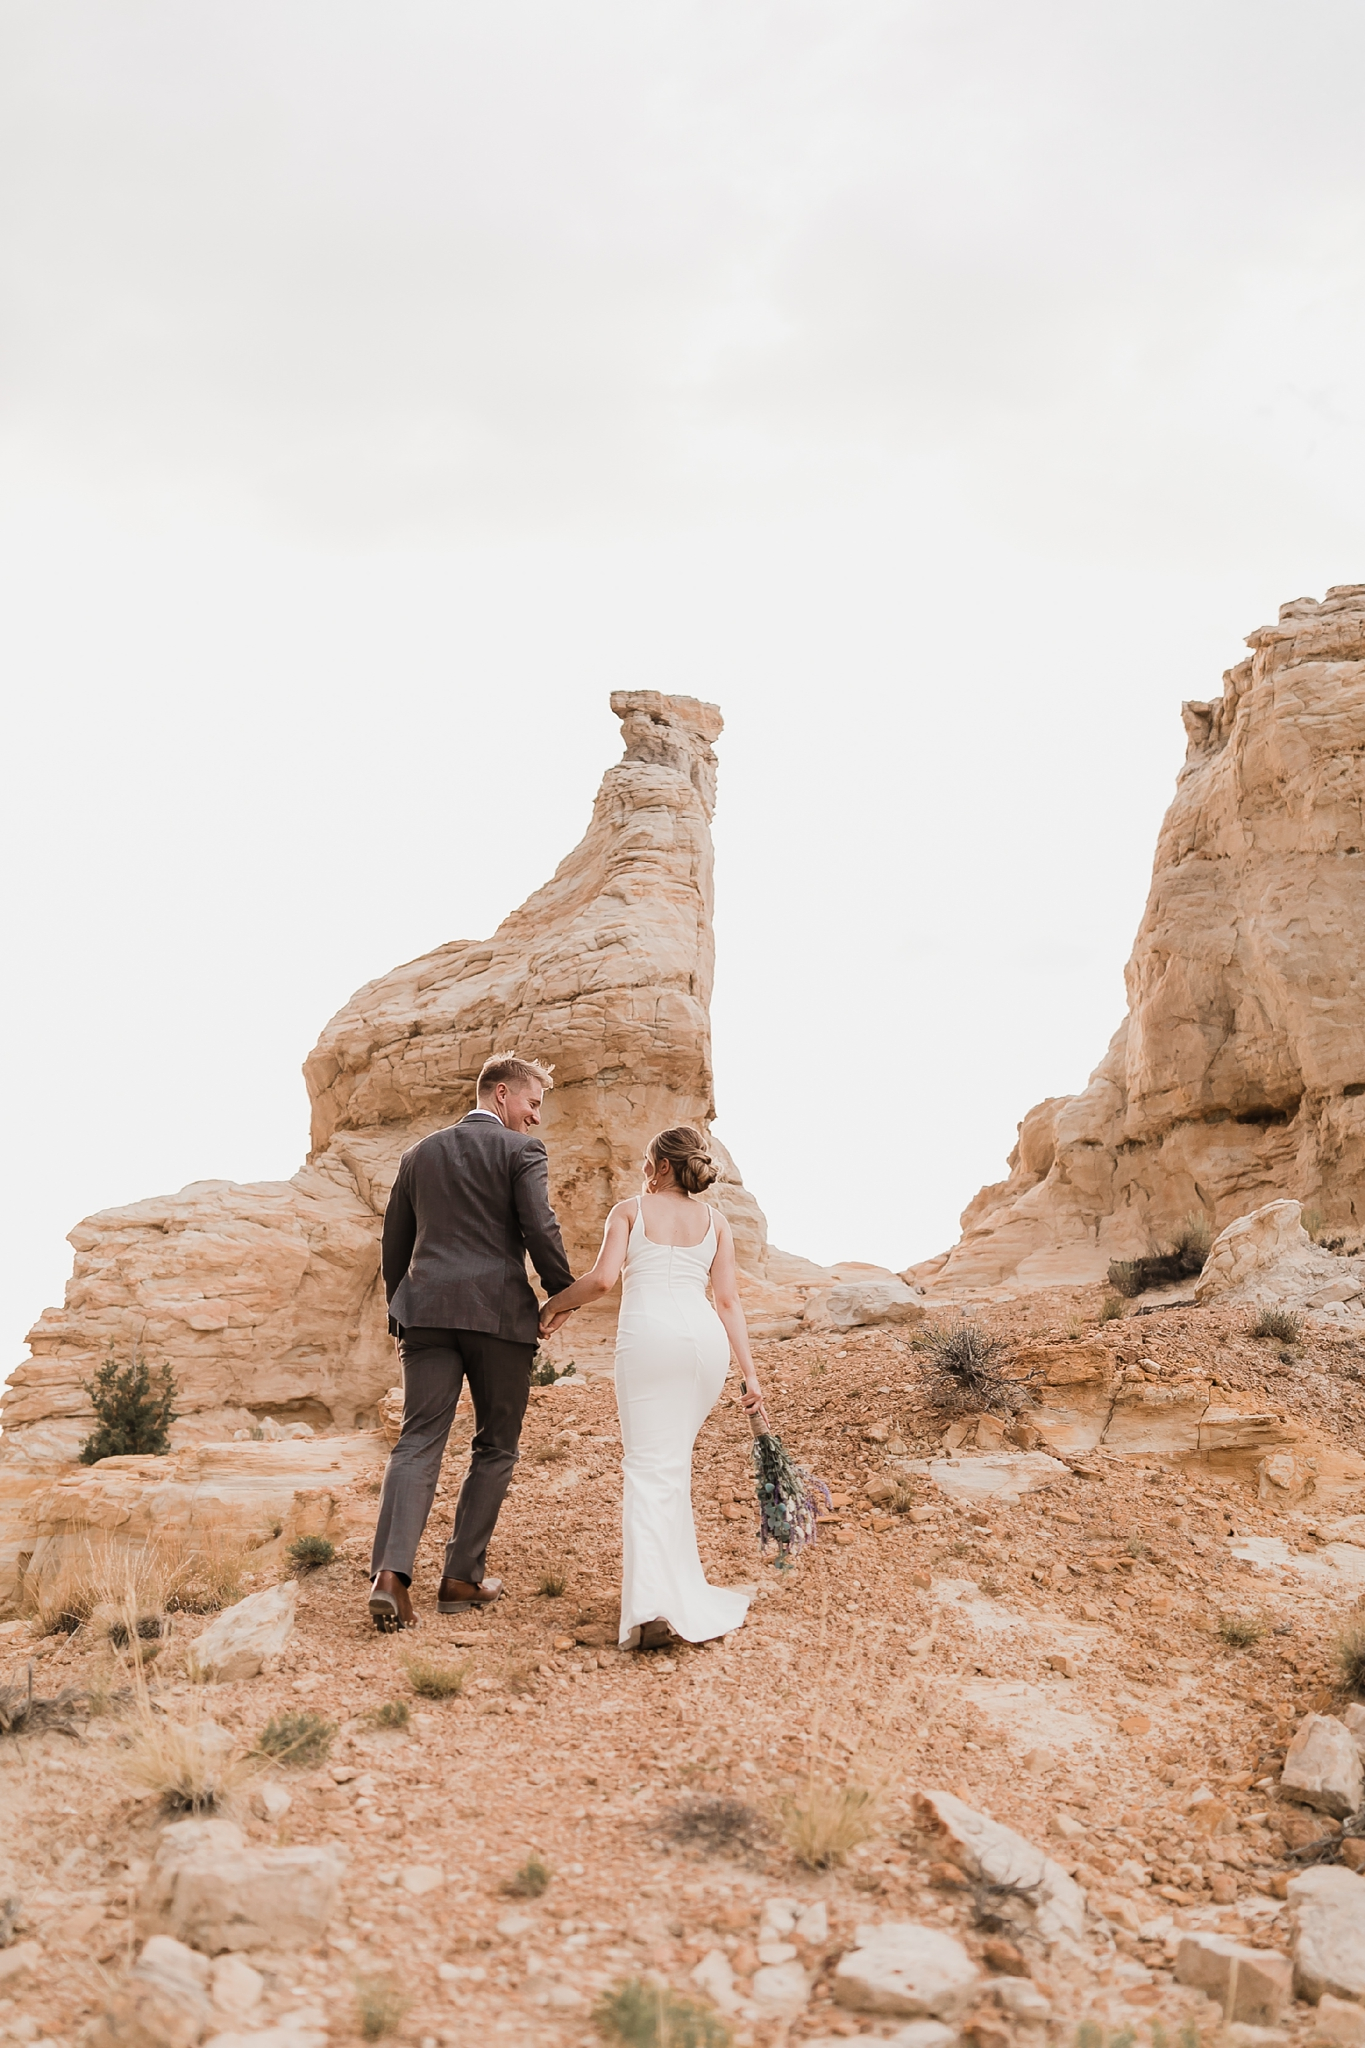 Alicia+lucia+photography+-+albuquerque+wedding+photographer+-+santa+fe+wedding+photography+-+new+mexico+wedding+photographer+-+new+mexico+wedding+-+new+mexico+elopement+-+elopment+-+mountain+elopement_0017.jpg